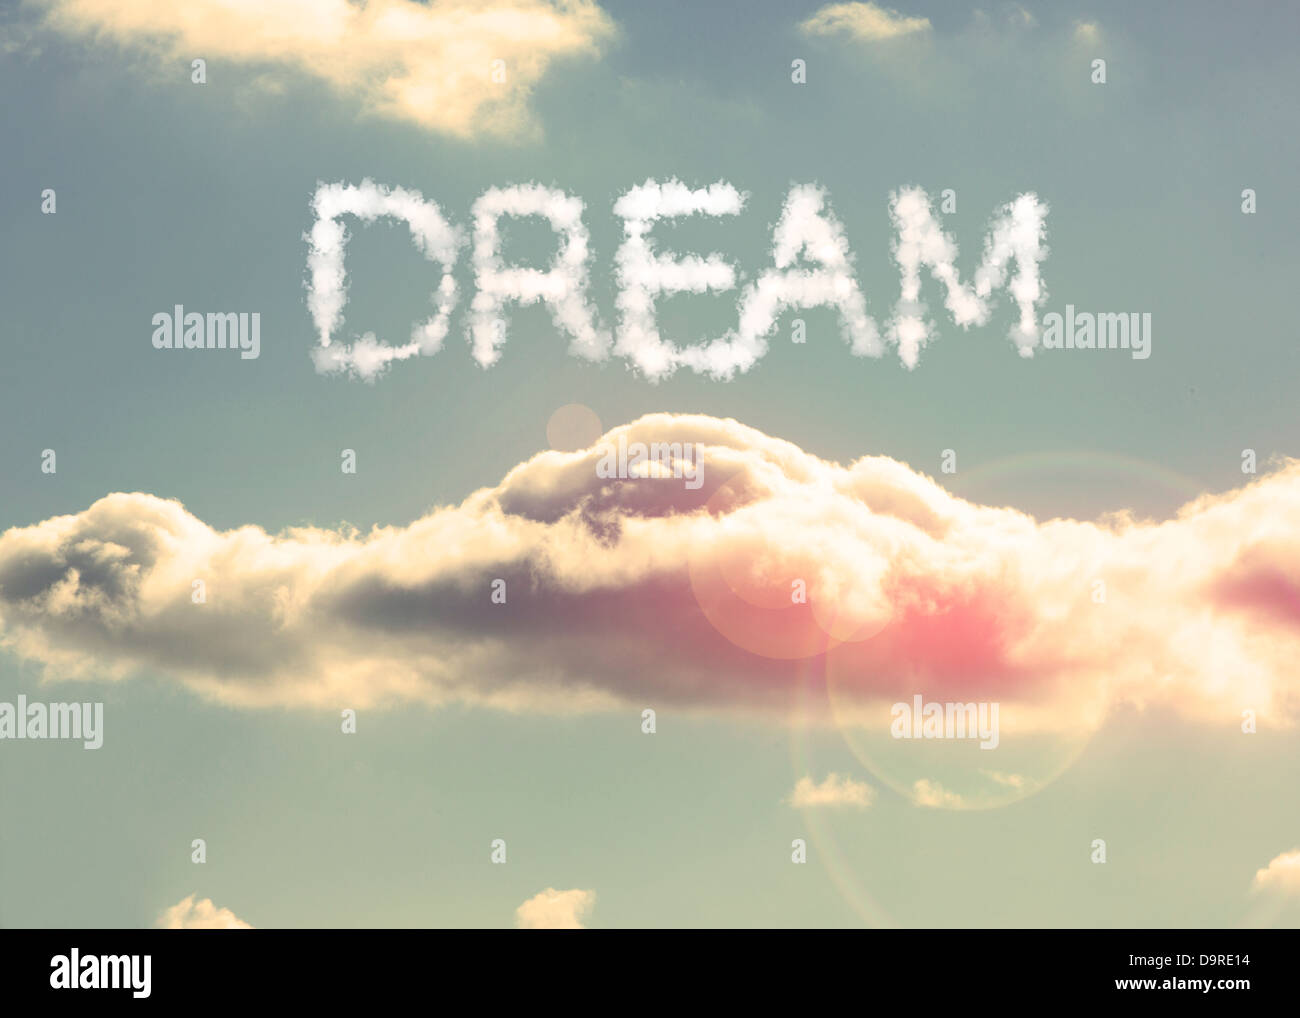 Clouds spelling out dream - Stock Image